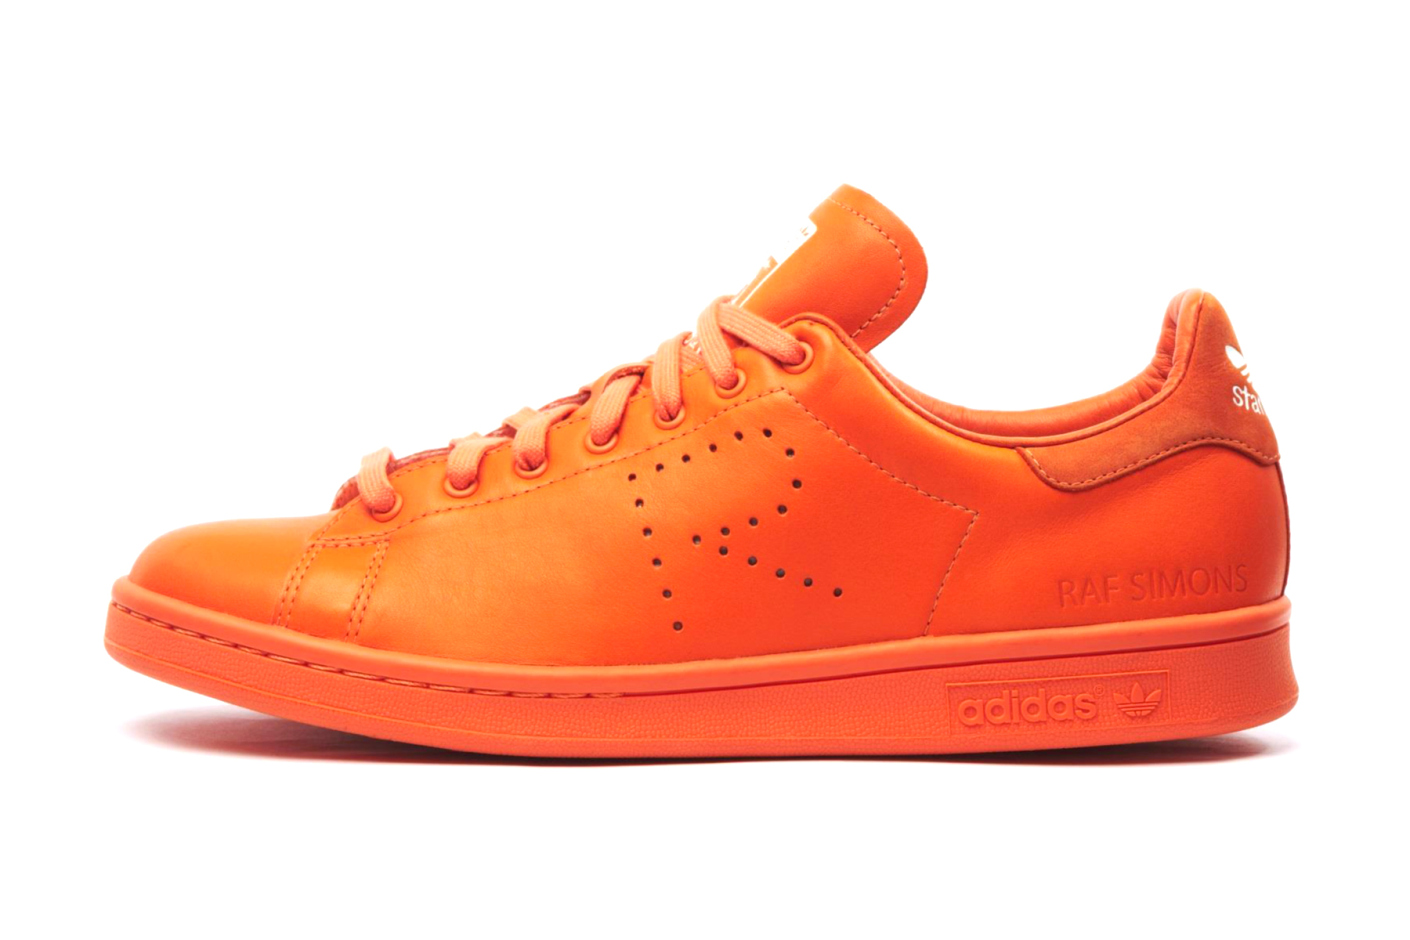 raf simons for adidas fall winter collection 3 Raf Simons for Adidas Fall/Winter 2014 Footwear Collection